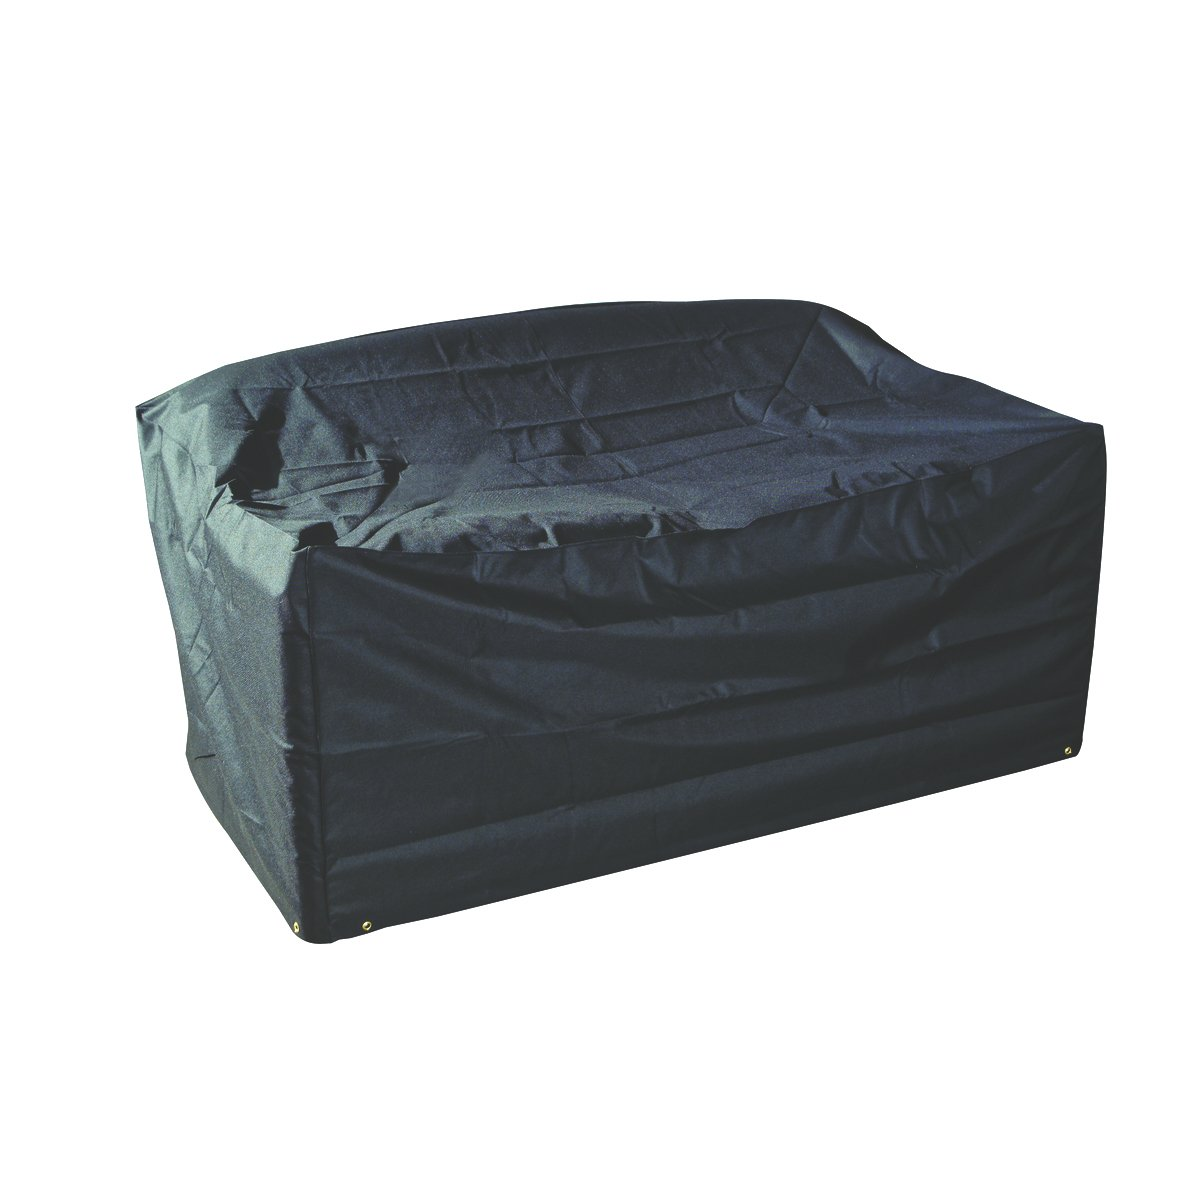 . Bosmere M690 3 Seat Modula Sofa Cover  Amazon co uk  Garden   Outdoors